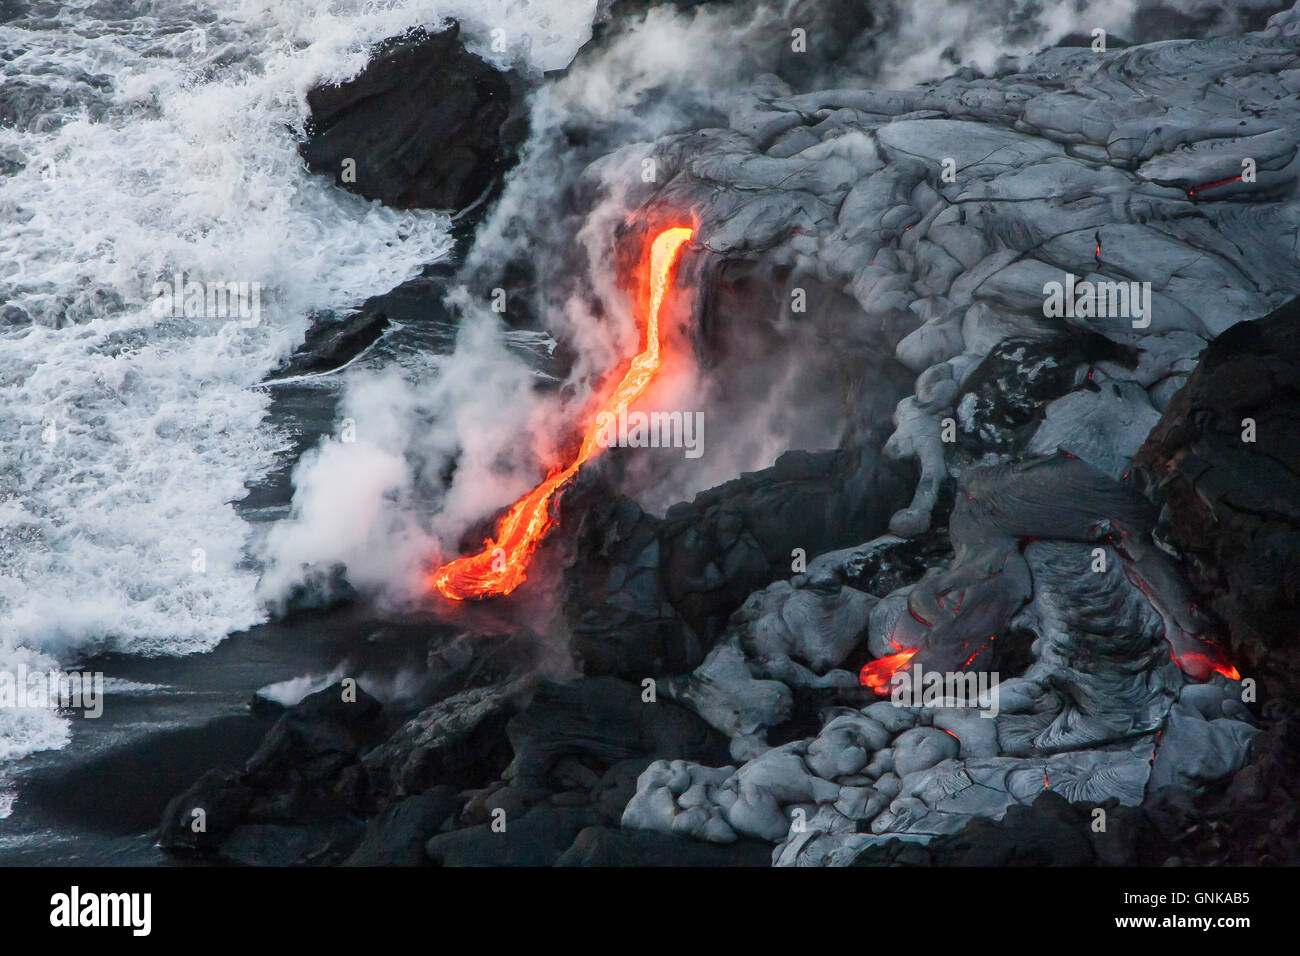 Lava comes out of lava tubes and meets ocean water on Big Island, Hawaii - Stock Image